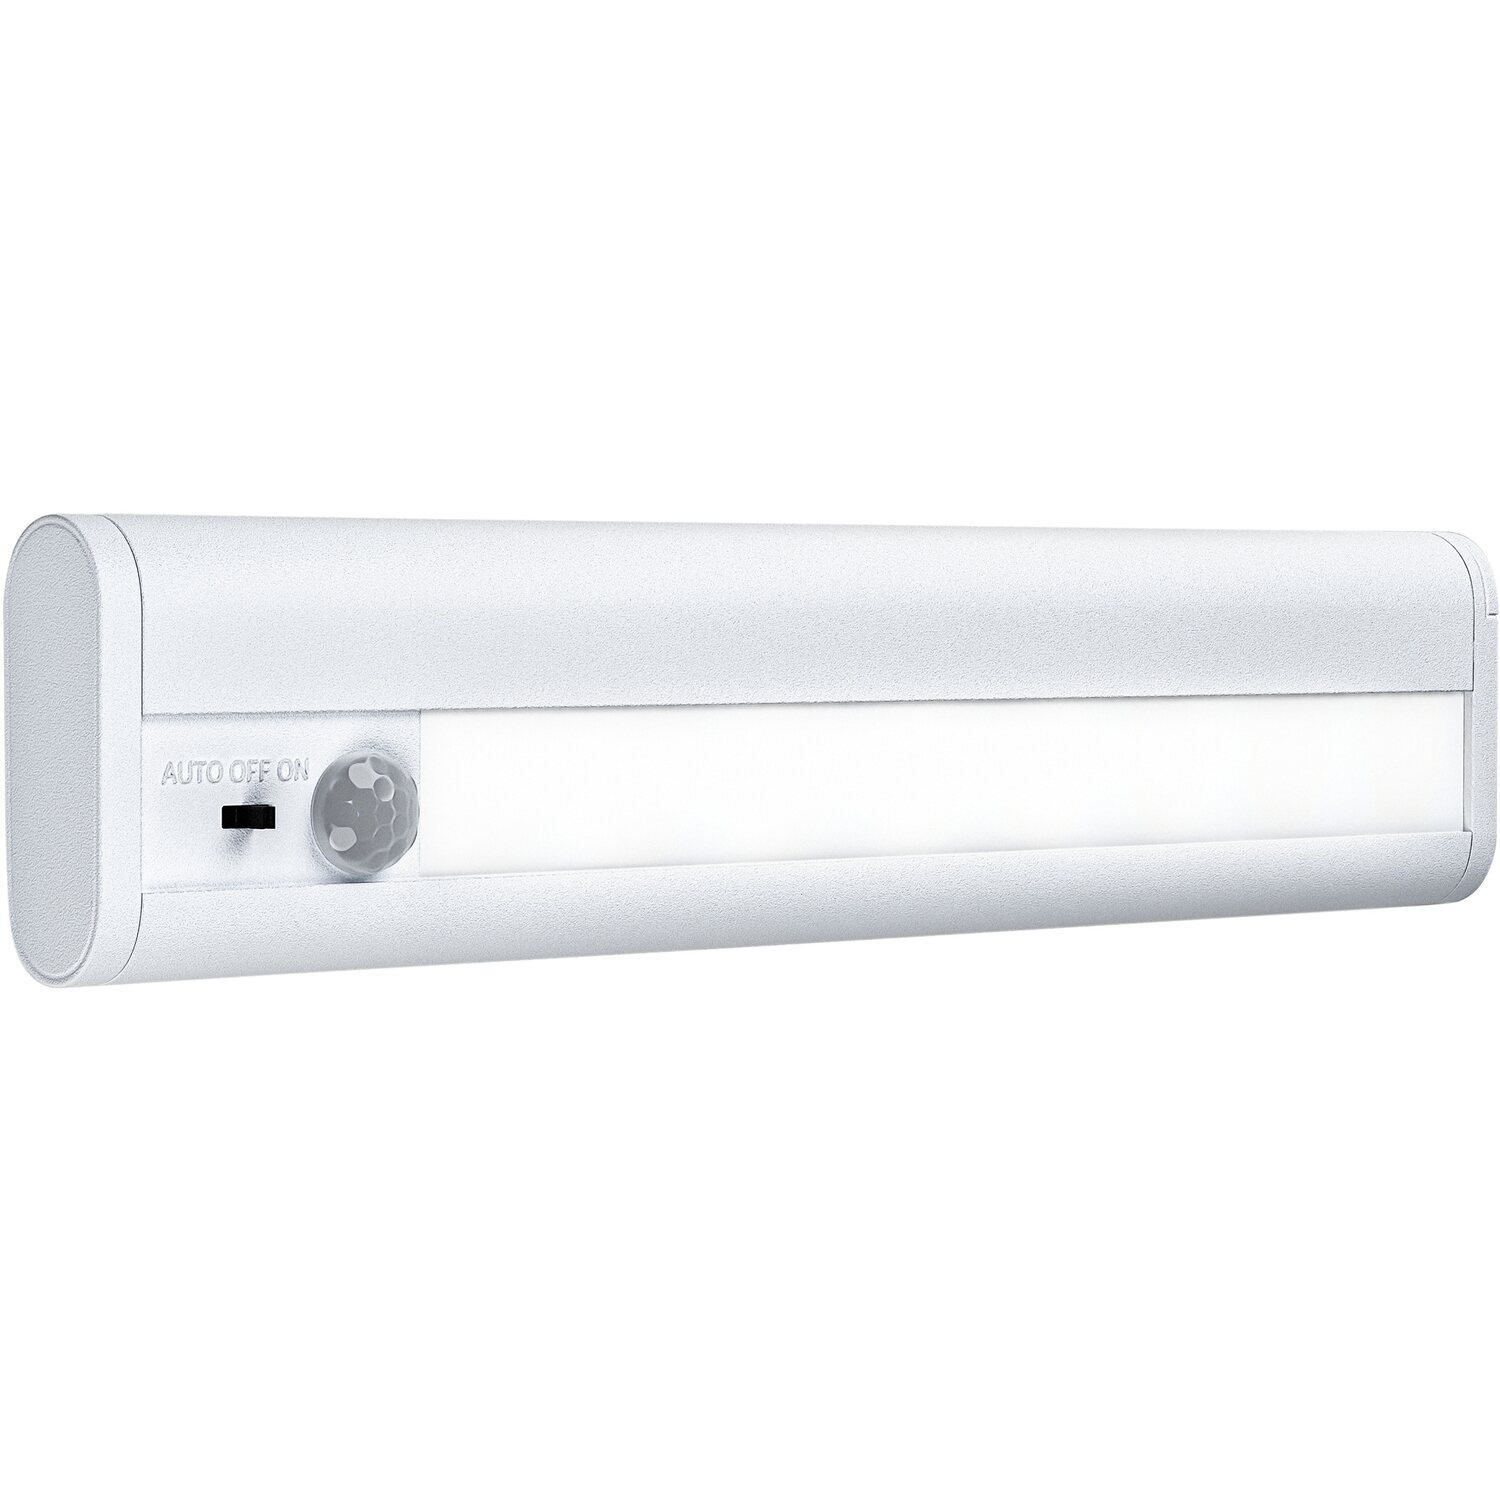 Ledvance LED Leuchte Linear LED Mobile 20 cm Weiß